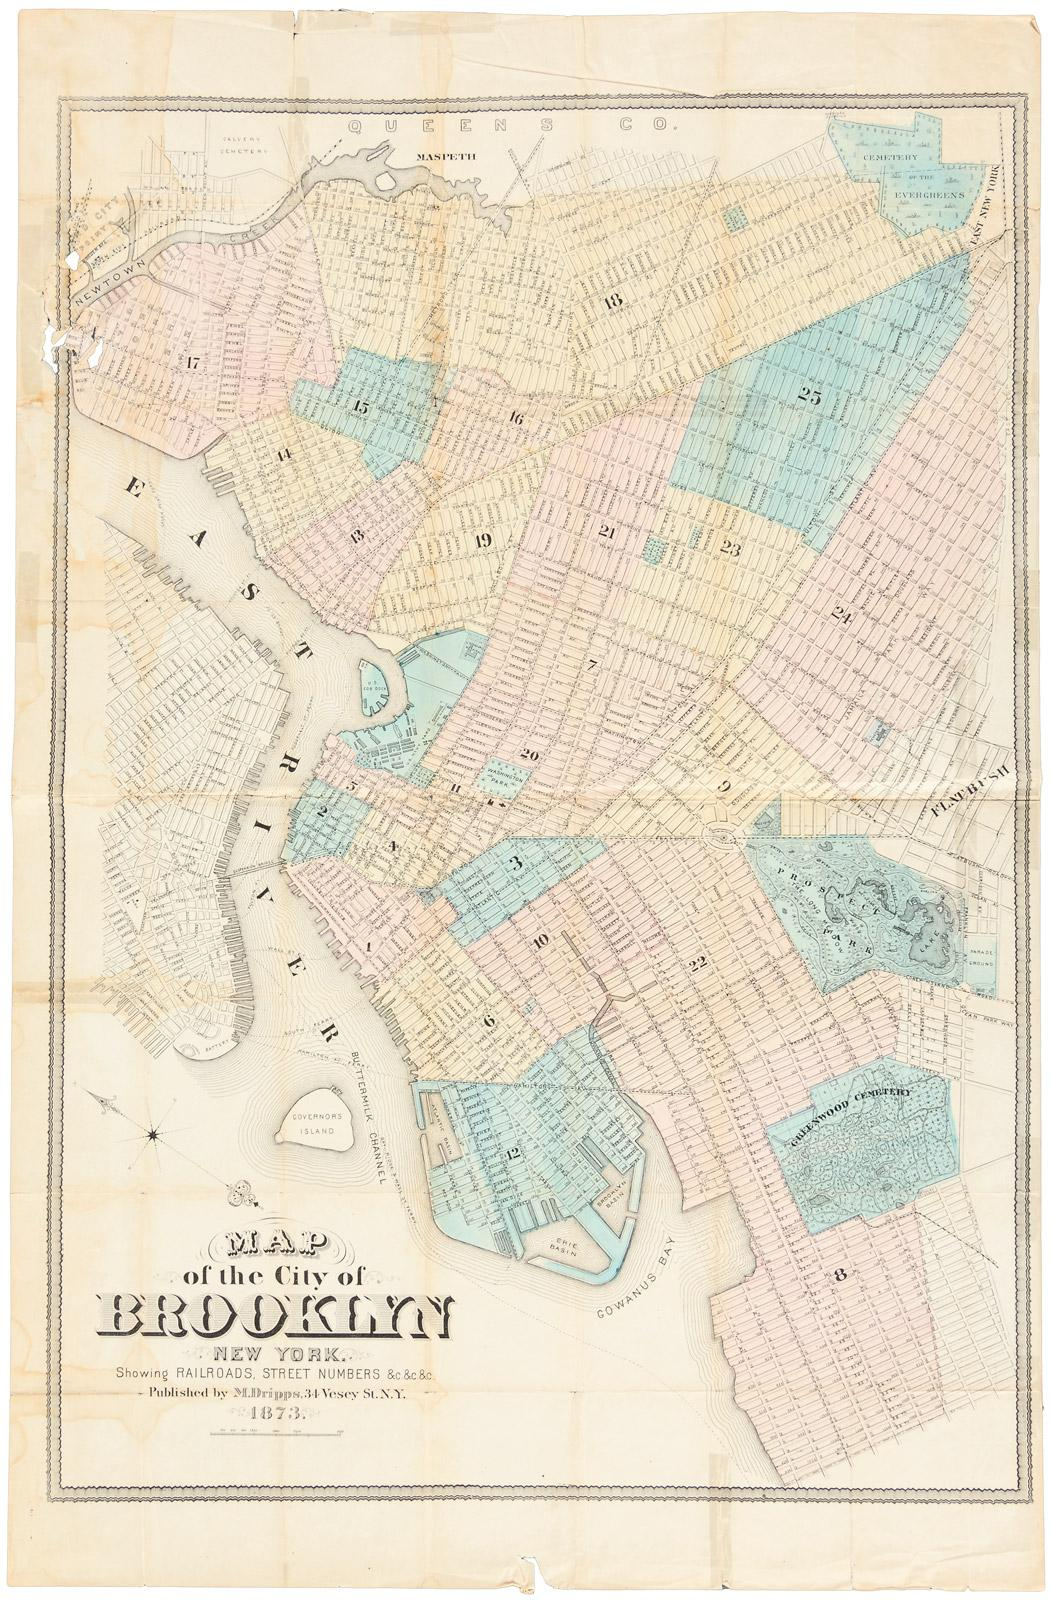 Map of the City of Brooklyn, New York, showing railroads ... City Street Maps For Sale on city highway maps, city food maps, print city maps, local city maps, new york city maps, city map of illinois cities, metro city maps, city of jefferson city tennessee, city of temple tx maps, city of youngtown az map, city walking map boston, neighborhood maps, city lot maps, city streets of fort collins, road maps, city tourist maps, city state maps, city place maps, city of simi valley maps, city background,